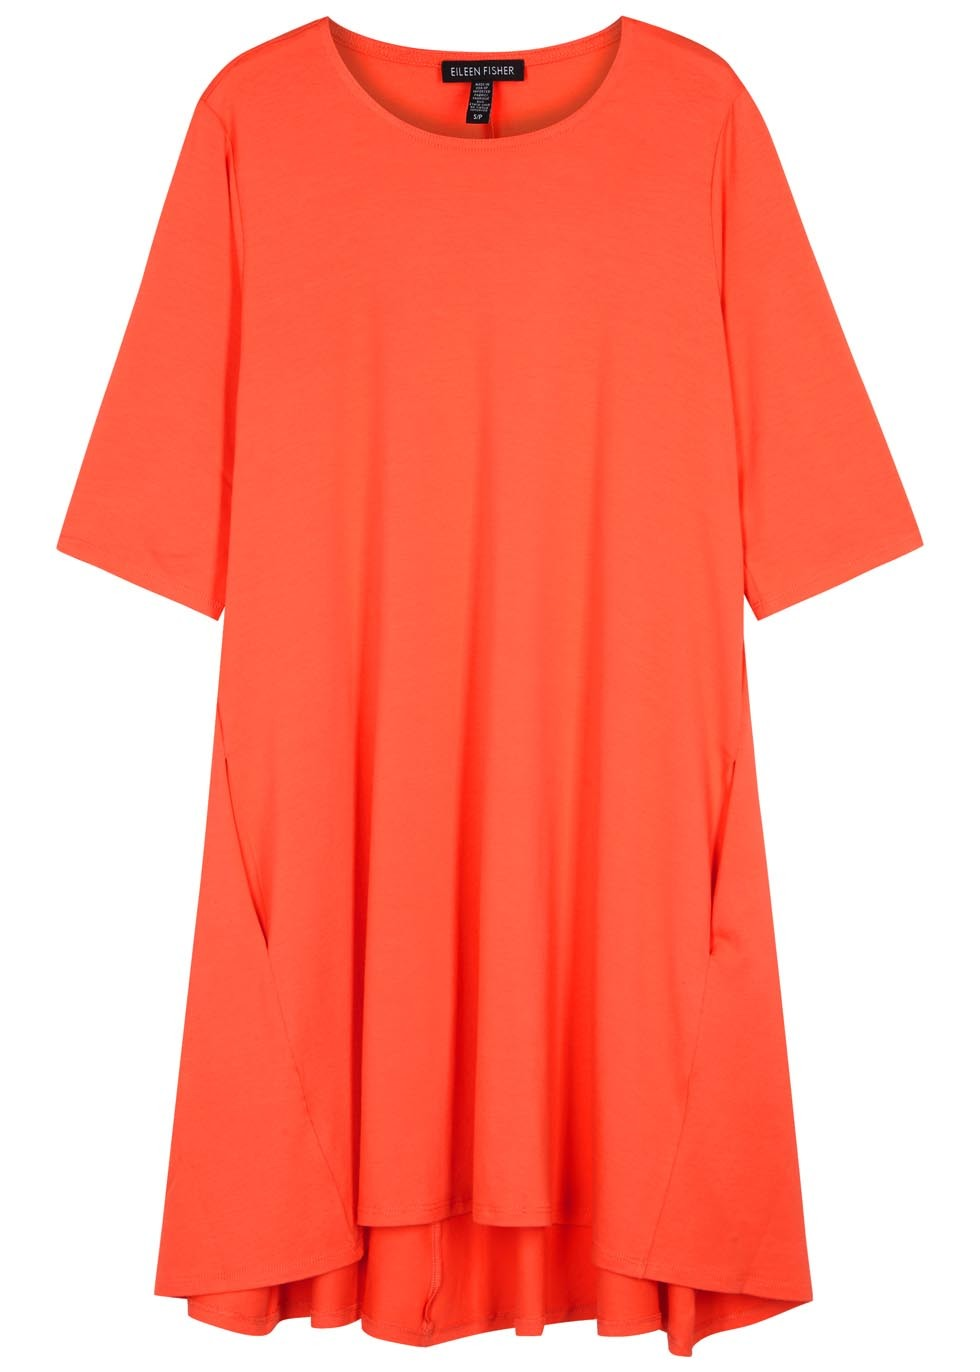 Coral Jersey Top - neckline: round neck; pattern: plain; length: below the bottom; predominant colour: coral; occasions: casual; style: top; fibres: viscose/rayon - stretch; fit: loose; sleeve length: half sleeve; sleeve style: standard; pattern type: fabric; texture group: jersey - stretchy/drapey; season: s/s 2016